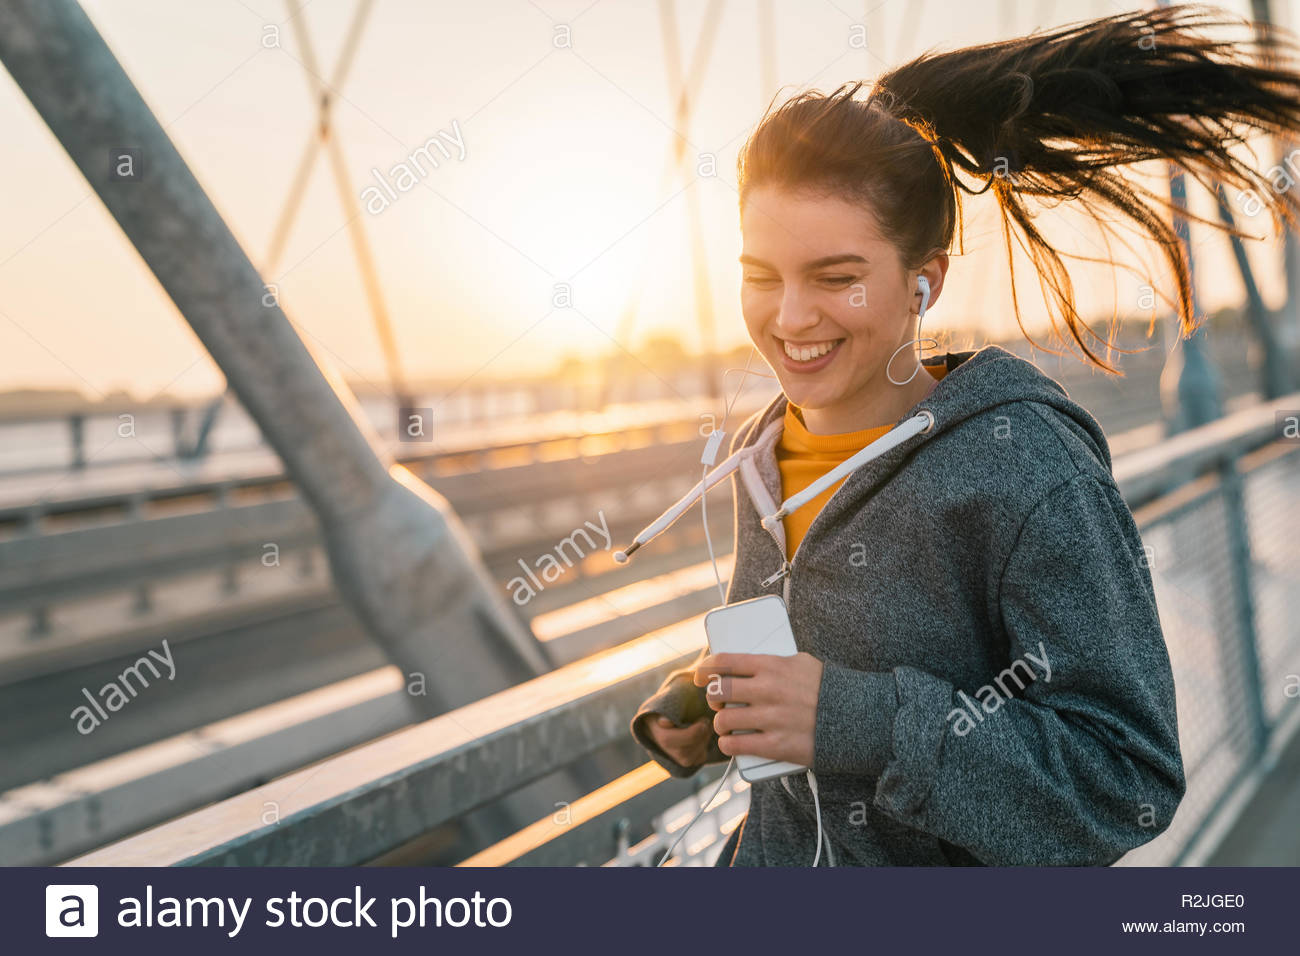 Sportswoman running while listening to music and smiling on bridge at sunrise. - Stock Image